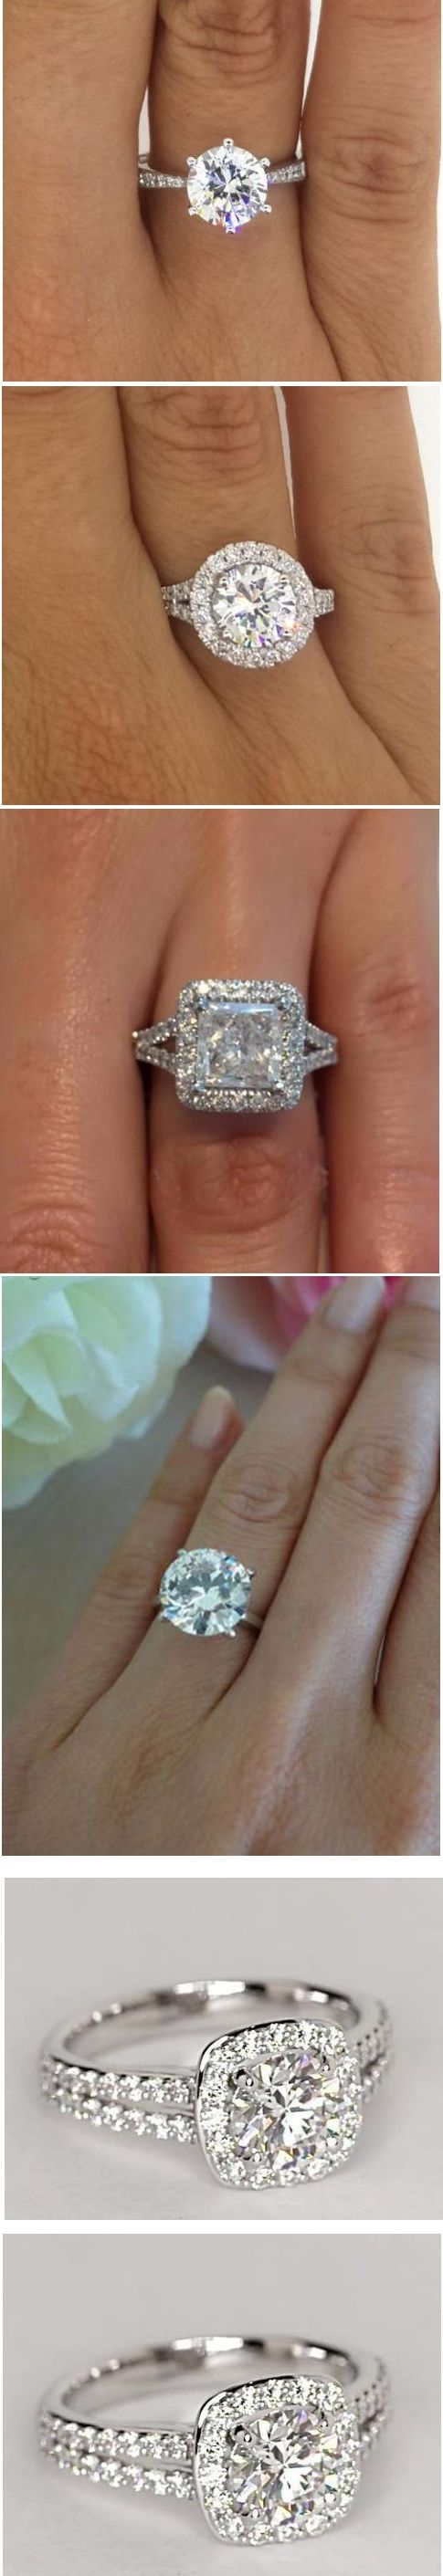 Best Diamond Engagement Rings On SALE | Bridal Rings | Jewelry of the day | Engagement